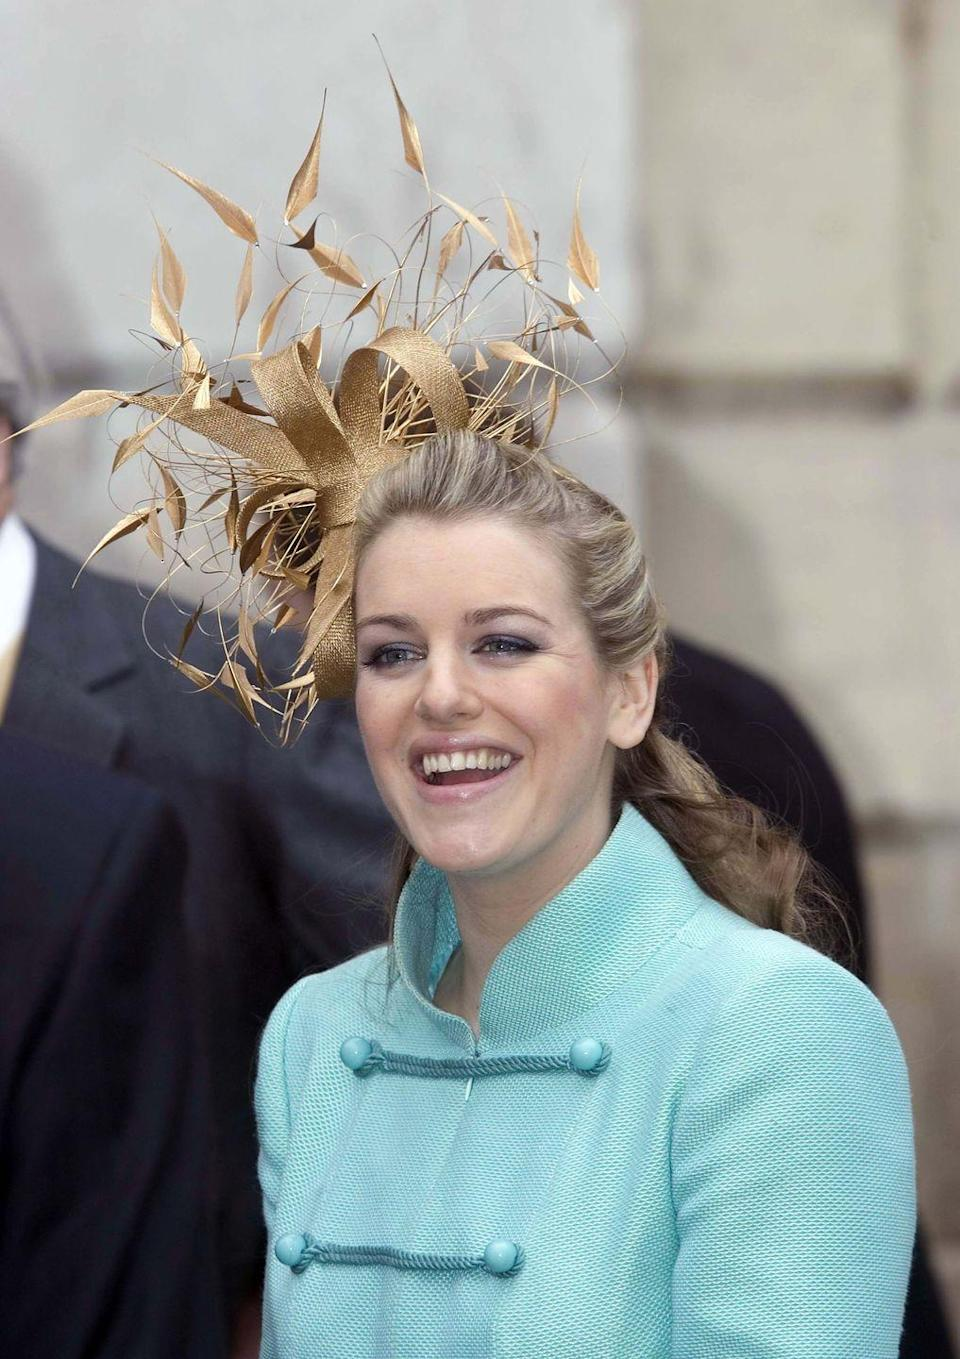 """<p>Camilla's daughter Laura Lopes chose a metallic fascinator to wear to her mother's wedding.</p><p><strong><a href=""""https://www.townandcountrymag.com/society/tradition/a17008420/camilla-parker-bowles-children/"""" rel=""""nofollow noopener"""" target=""""_blank"""" data-ylk=""""slk:More: Meet the Children of Camilla, Duchess of Cornwall."""" class=""""link rapid-noclick-resp"""">More: Meet the Children of Camilla, Duchess of Cornwall.</a></strong><br></p>"""